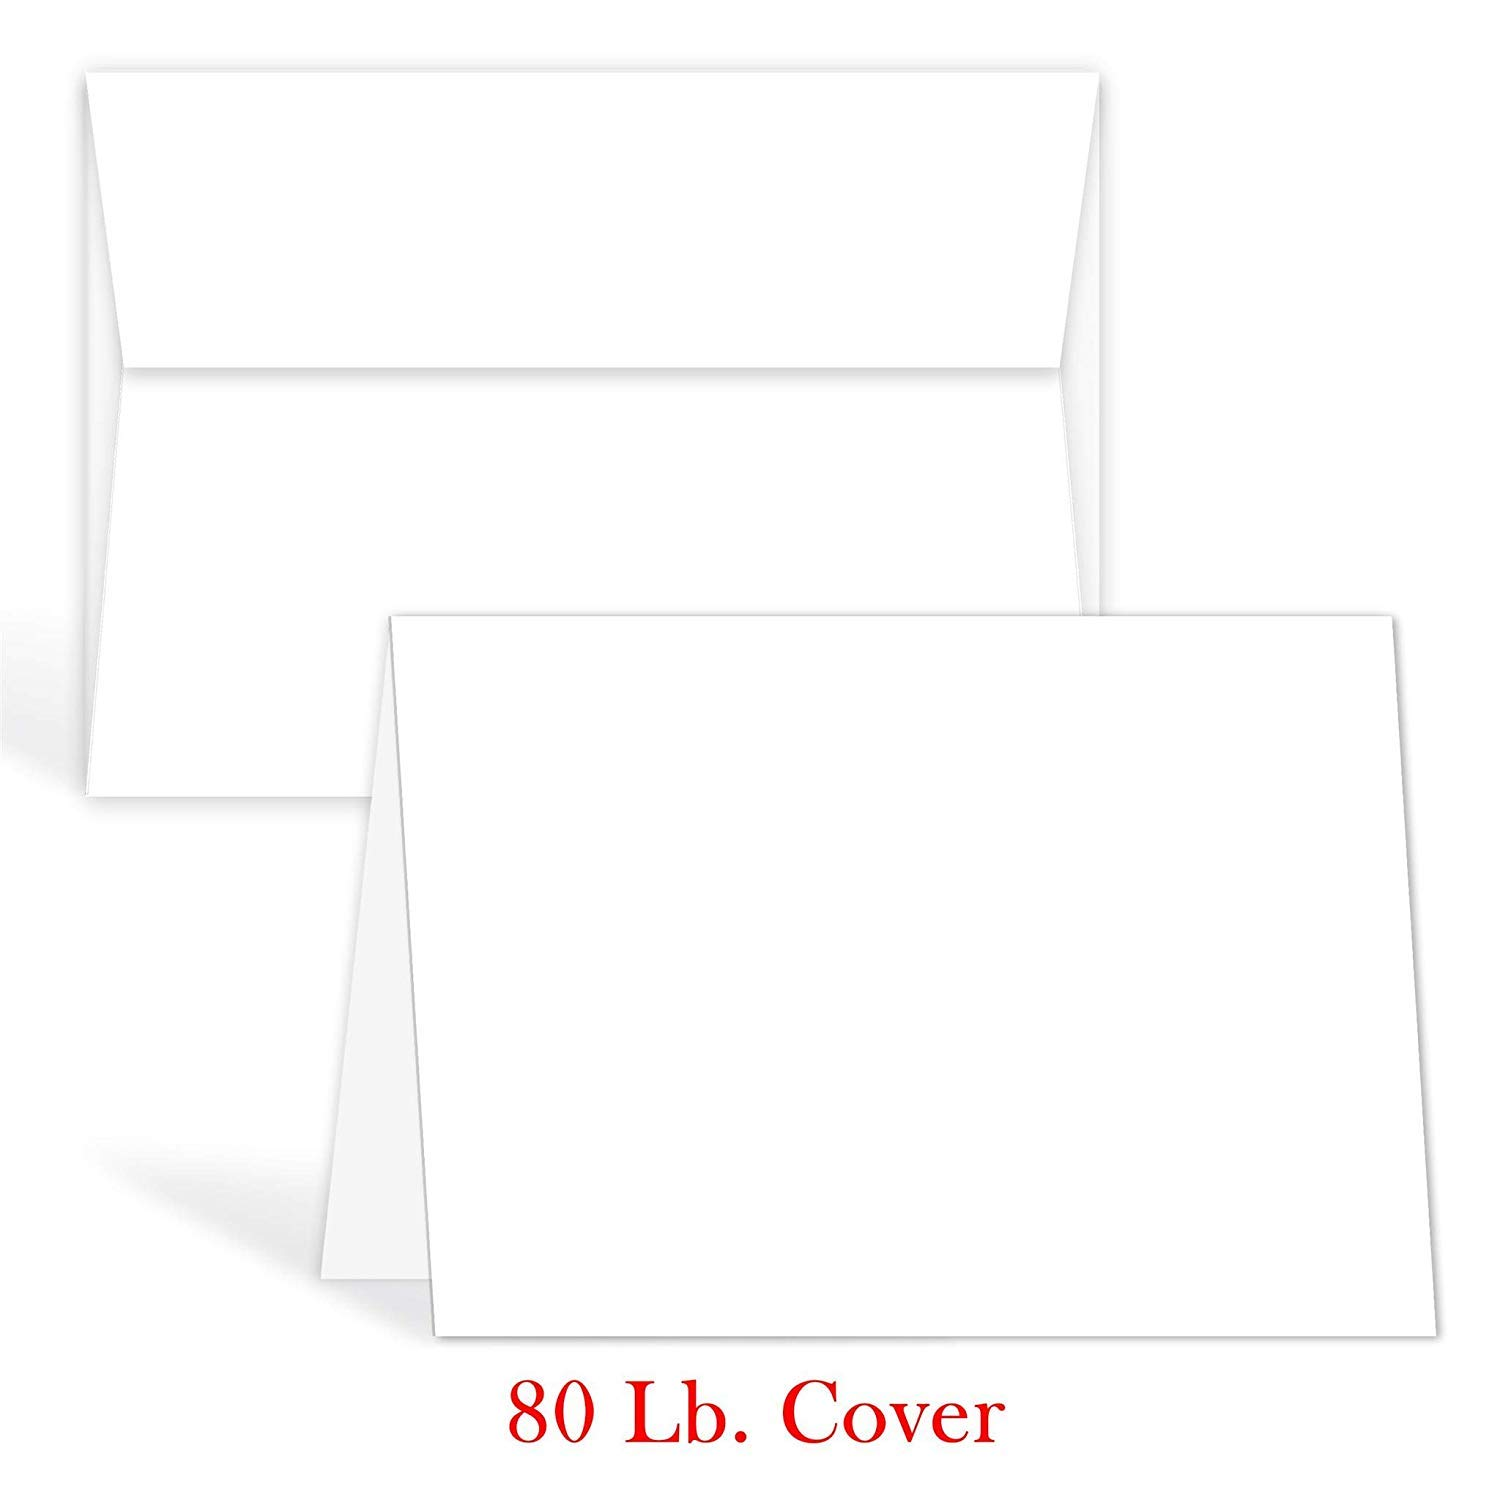 White Blank Greeting Fold Over Cards 80lb. Uncoated, 4 1/2 X 6 Inches Cards - 40 Foldover Greeting Cards Cards and Envelopes by S Superfine Printing (Image #1)